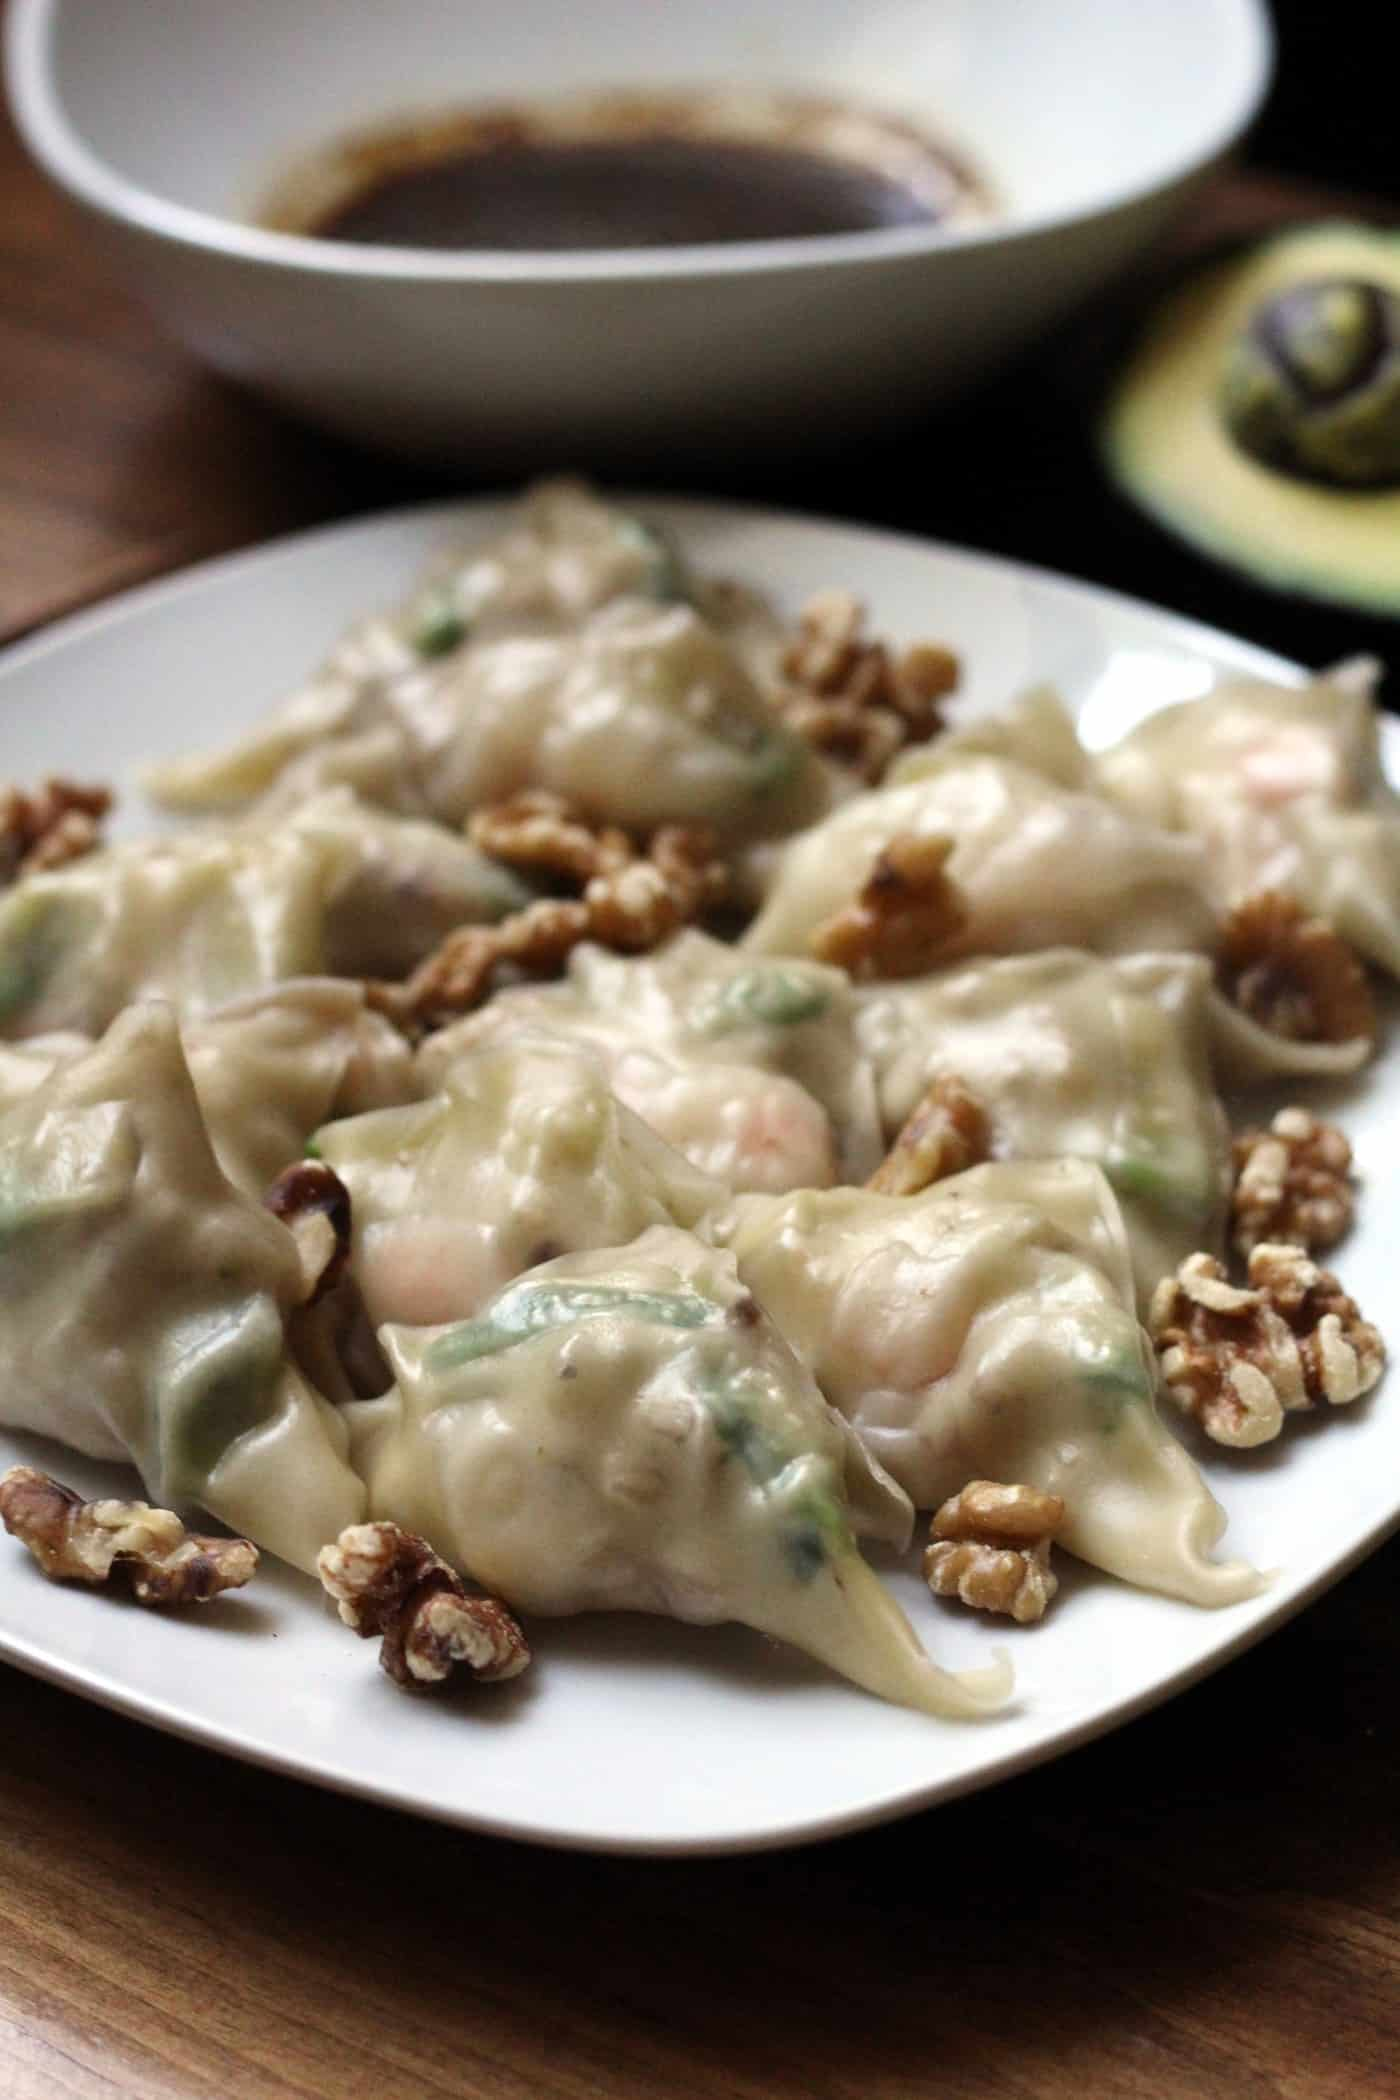 Steamed Shrimp Potstickers with Walnuts and Avocado